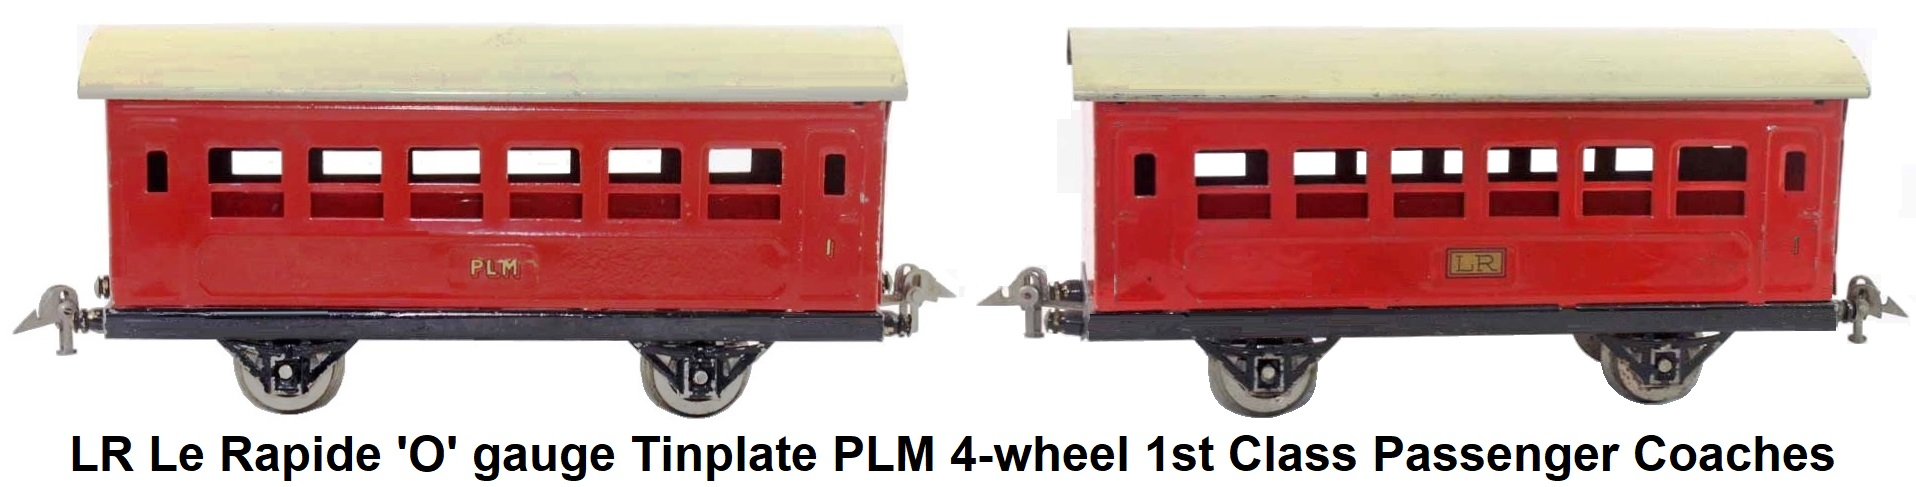 LR Le Rapide 'O' gauge Tinplate P.L.M. 4-wheel 1st class Passenger Coaches